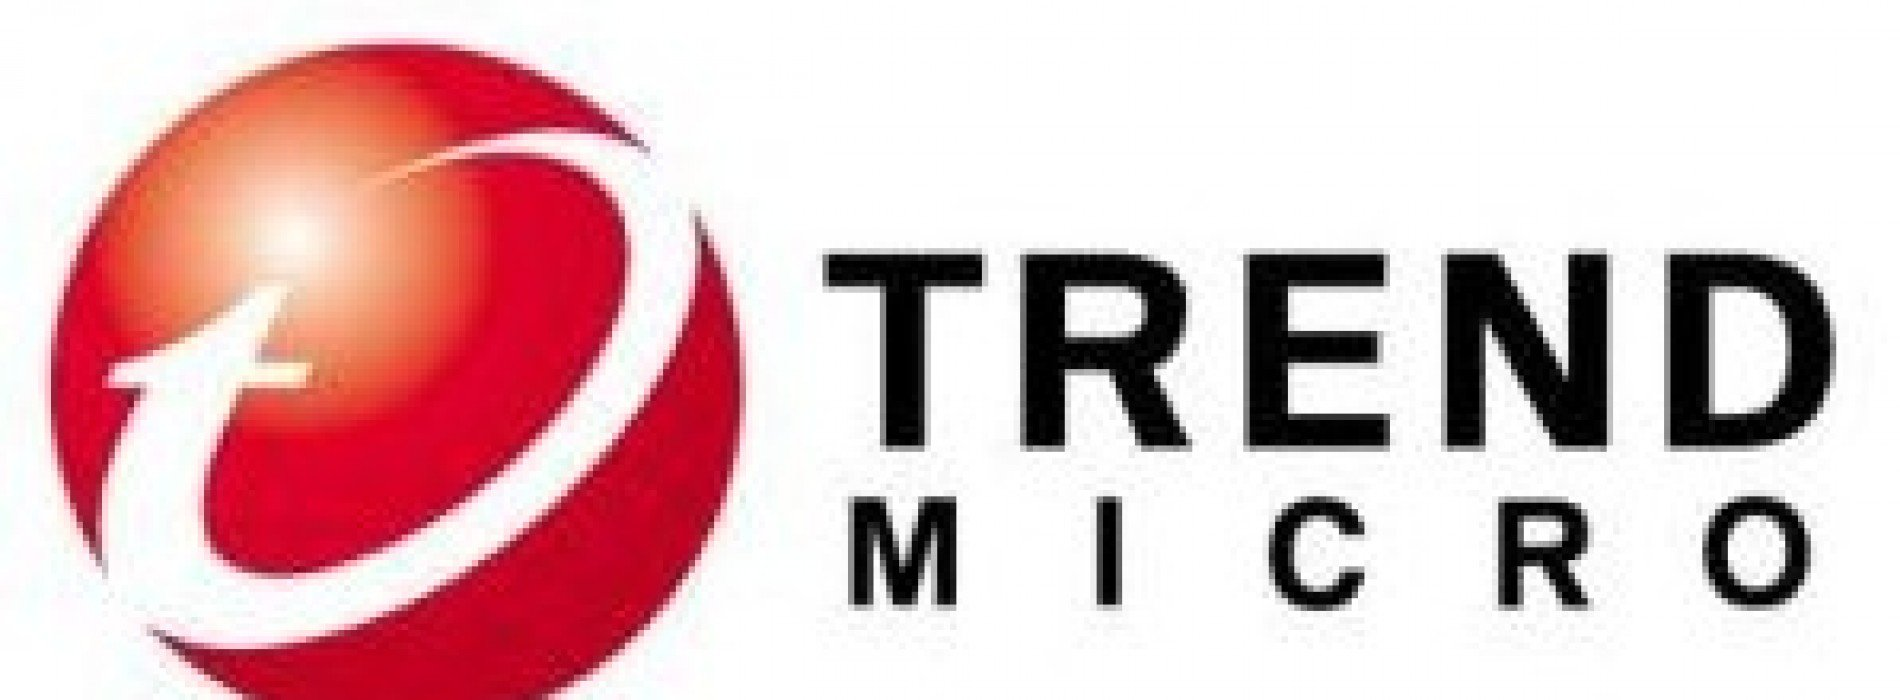 Verizon and Trend Micro debut a Mobile Security Application